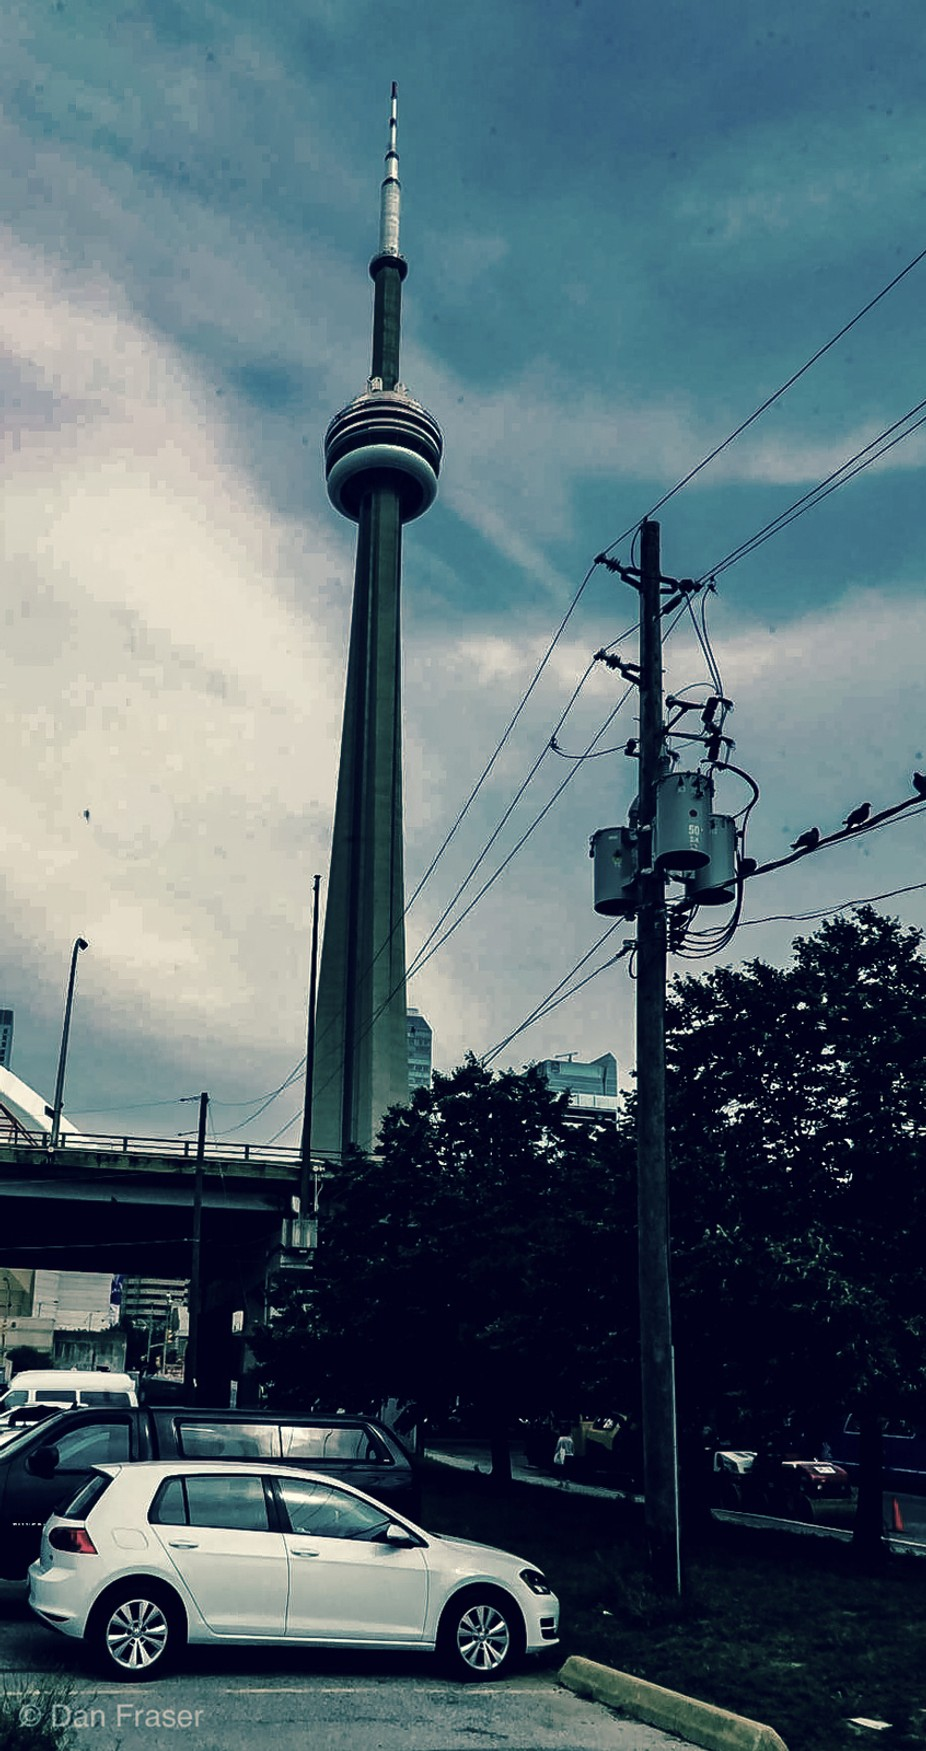 The CN Tower held the record for the world's tallest free-standing structure for 32 years until 2007 when it was surpassed by the Burj Khalifa and was the world's tallest tower until 2009 when it was surpassed by the Canton Tower.[9][10][11][12] It is now the ninth tallest free-standing structure in the world and remains the tallest free-standing structure in the Western Hemisphere. In 1995, the CN Tower was declared one of the modern Seven Wonders of the World by the American Society of Civil Engineers. It also belongs to the World Federation of Great Towers.[13][14][7]  It is a signature icon of Toronto's skyline[15][16] and attracts more than two million international visitors annually.[7][17]